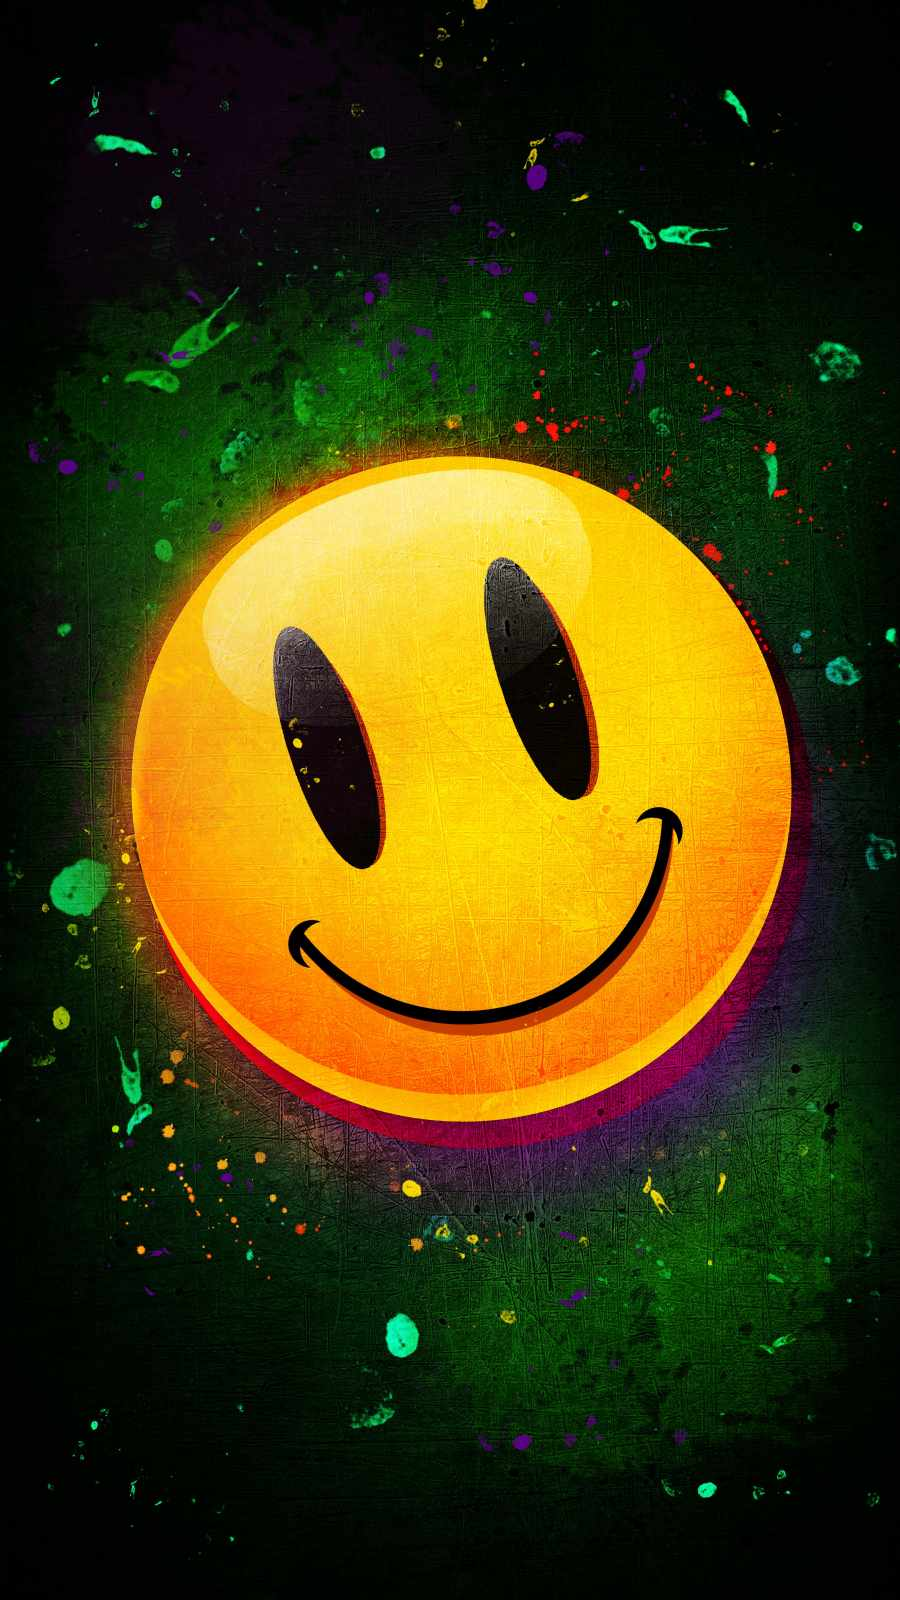 Smile Face iPhone Wallpaper